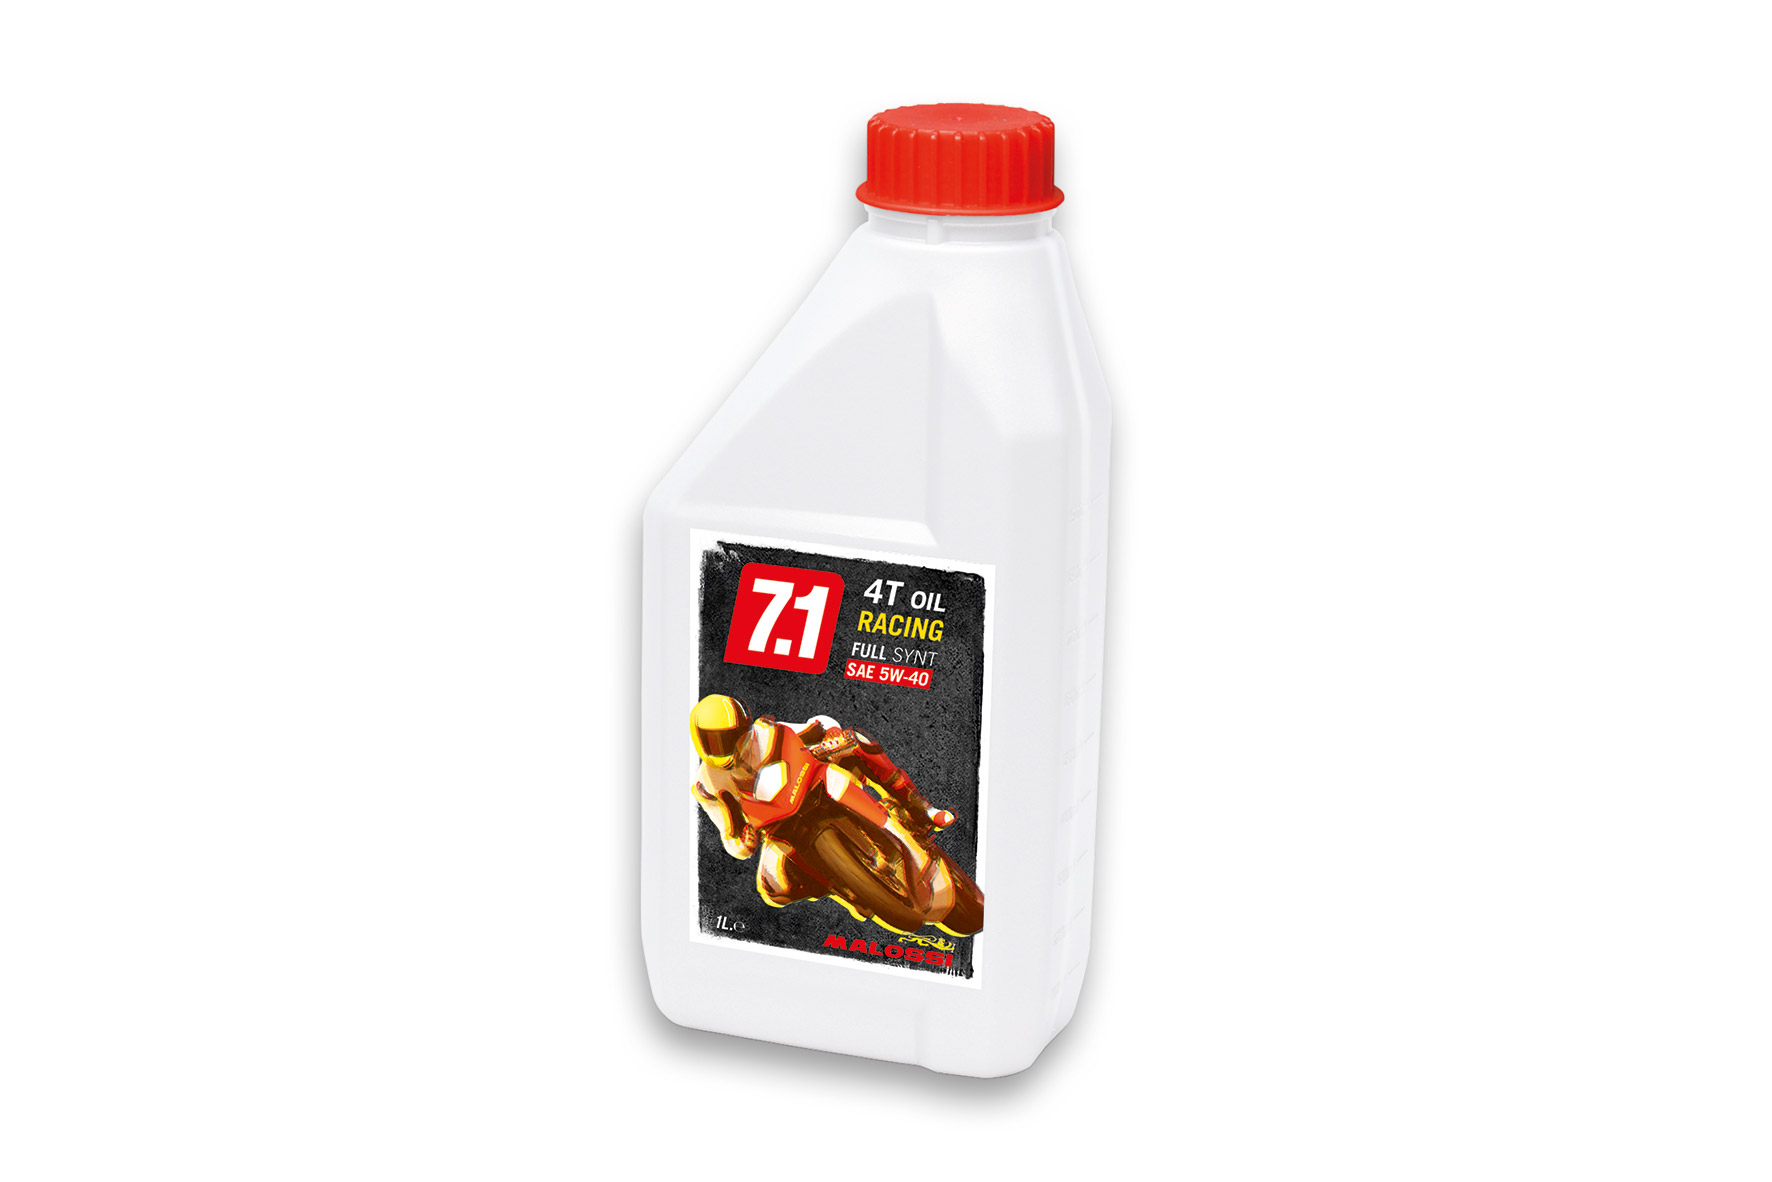 BOTTLE 7.1 4T OIL RACING Full Synt (SAE 5W-40) 1L -MOTO